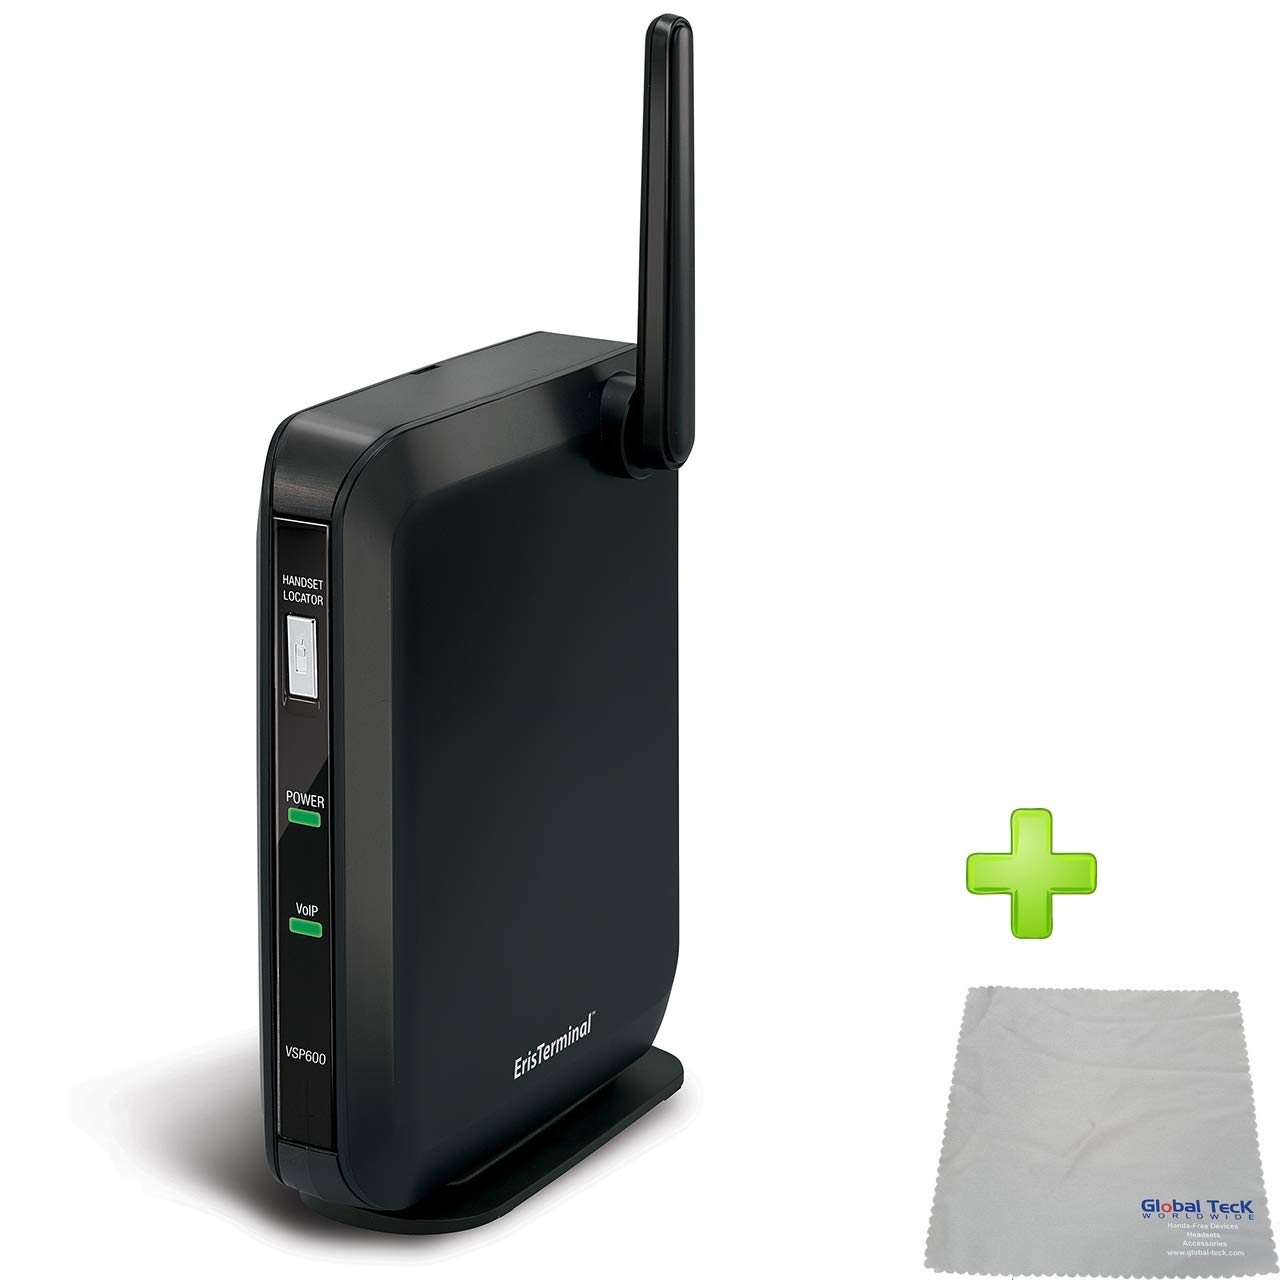 Global Teck Bundle of Vtech VSP600 IP DECT Base, Compatible with VSP601 and VSP608 Phones, Requires VoIP Service - Fuze, RingCentral, Vonage, 8x8 | with Microfiber Cleaning Cloth by Global Teck Worldwide